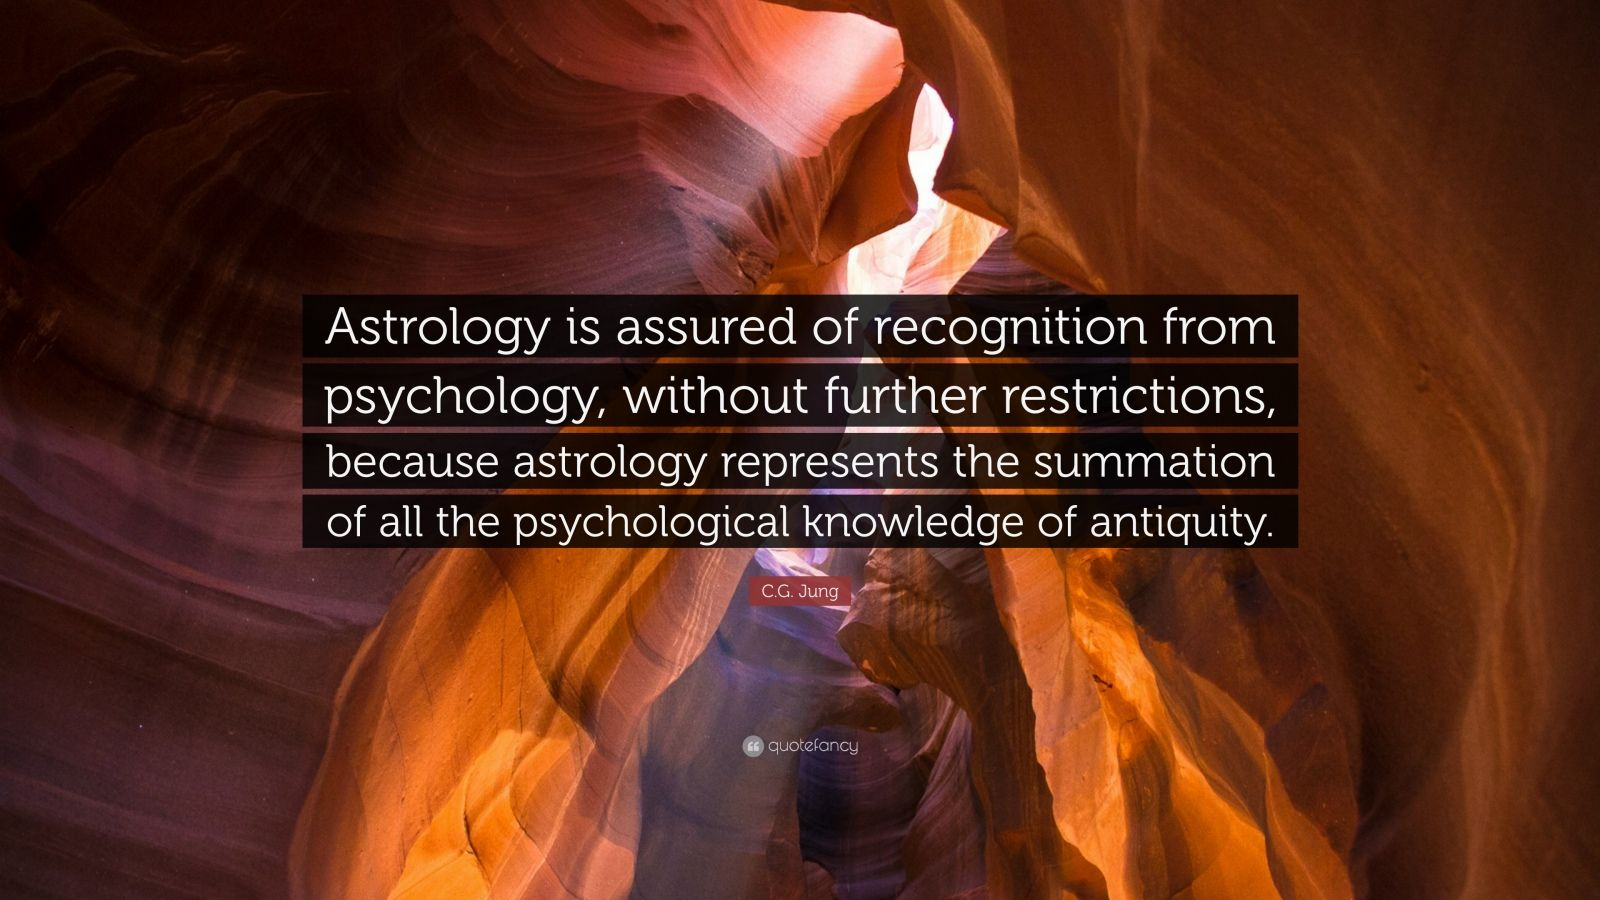 """C.G. Jung Quote: """"Astrology is assured of recognition from psychology, without further restrictions, because astrology represents the summation of all the psychological knowledge of antiquity."""""""